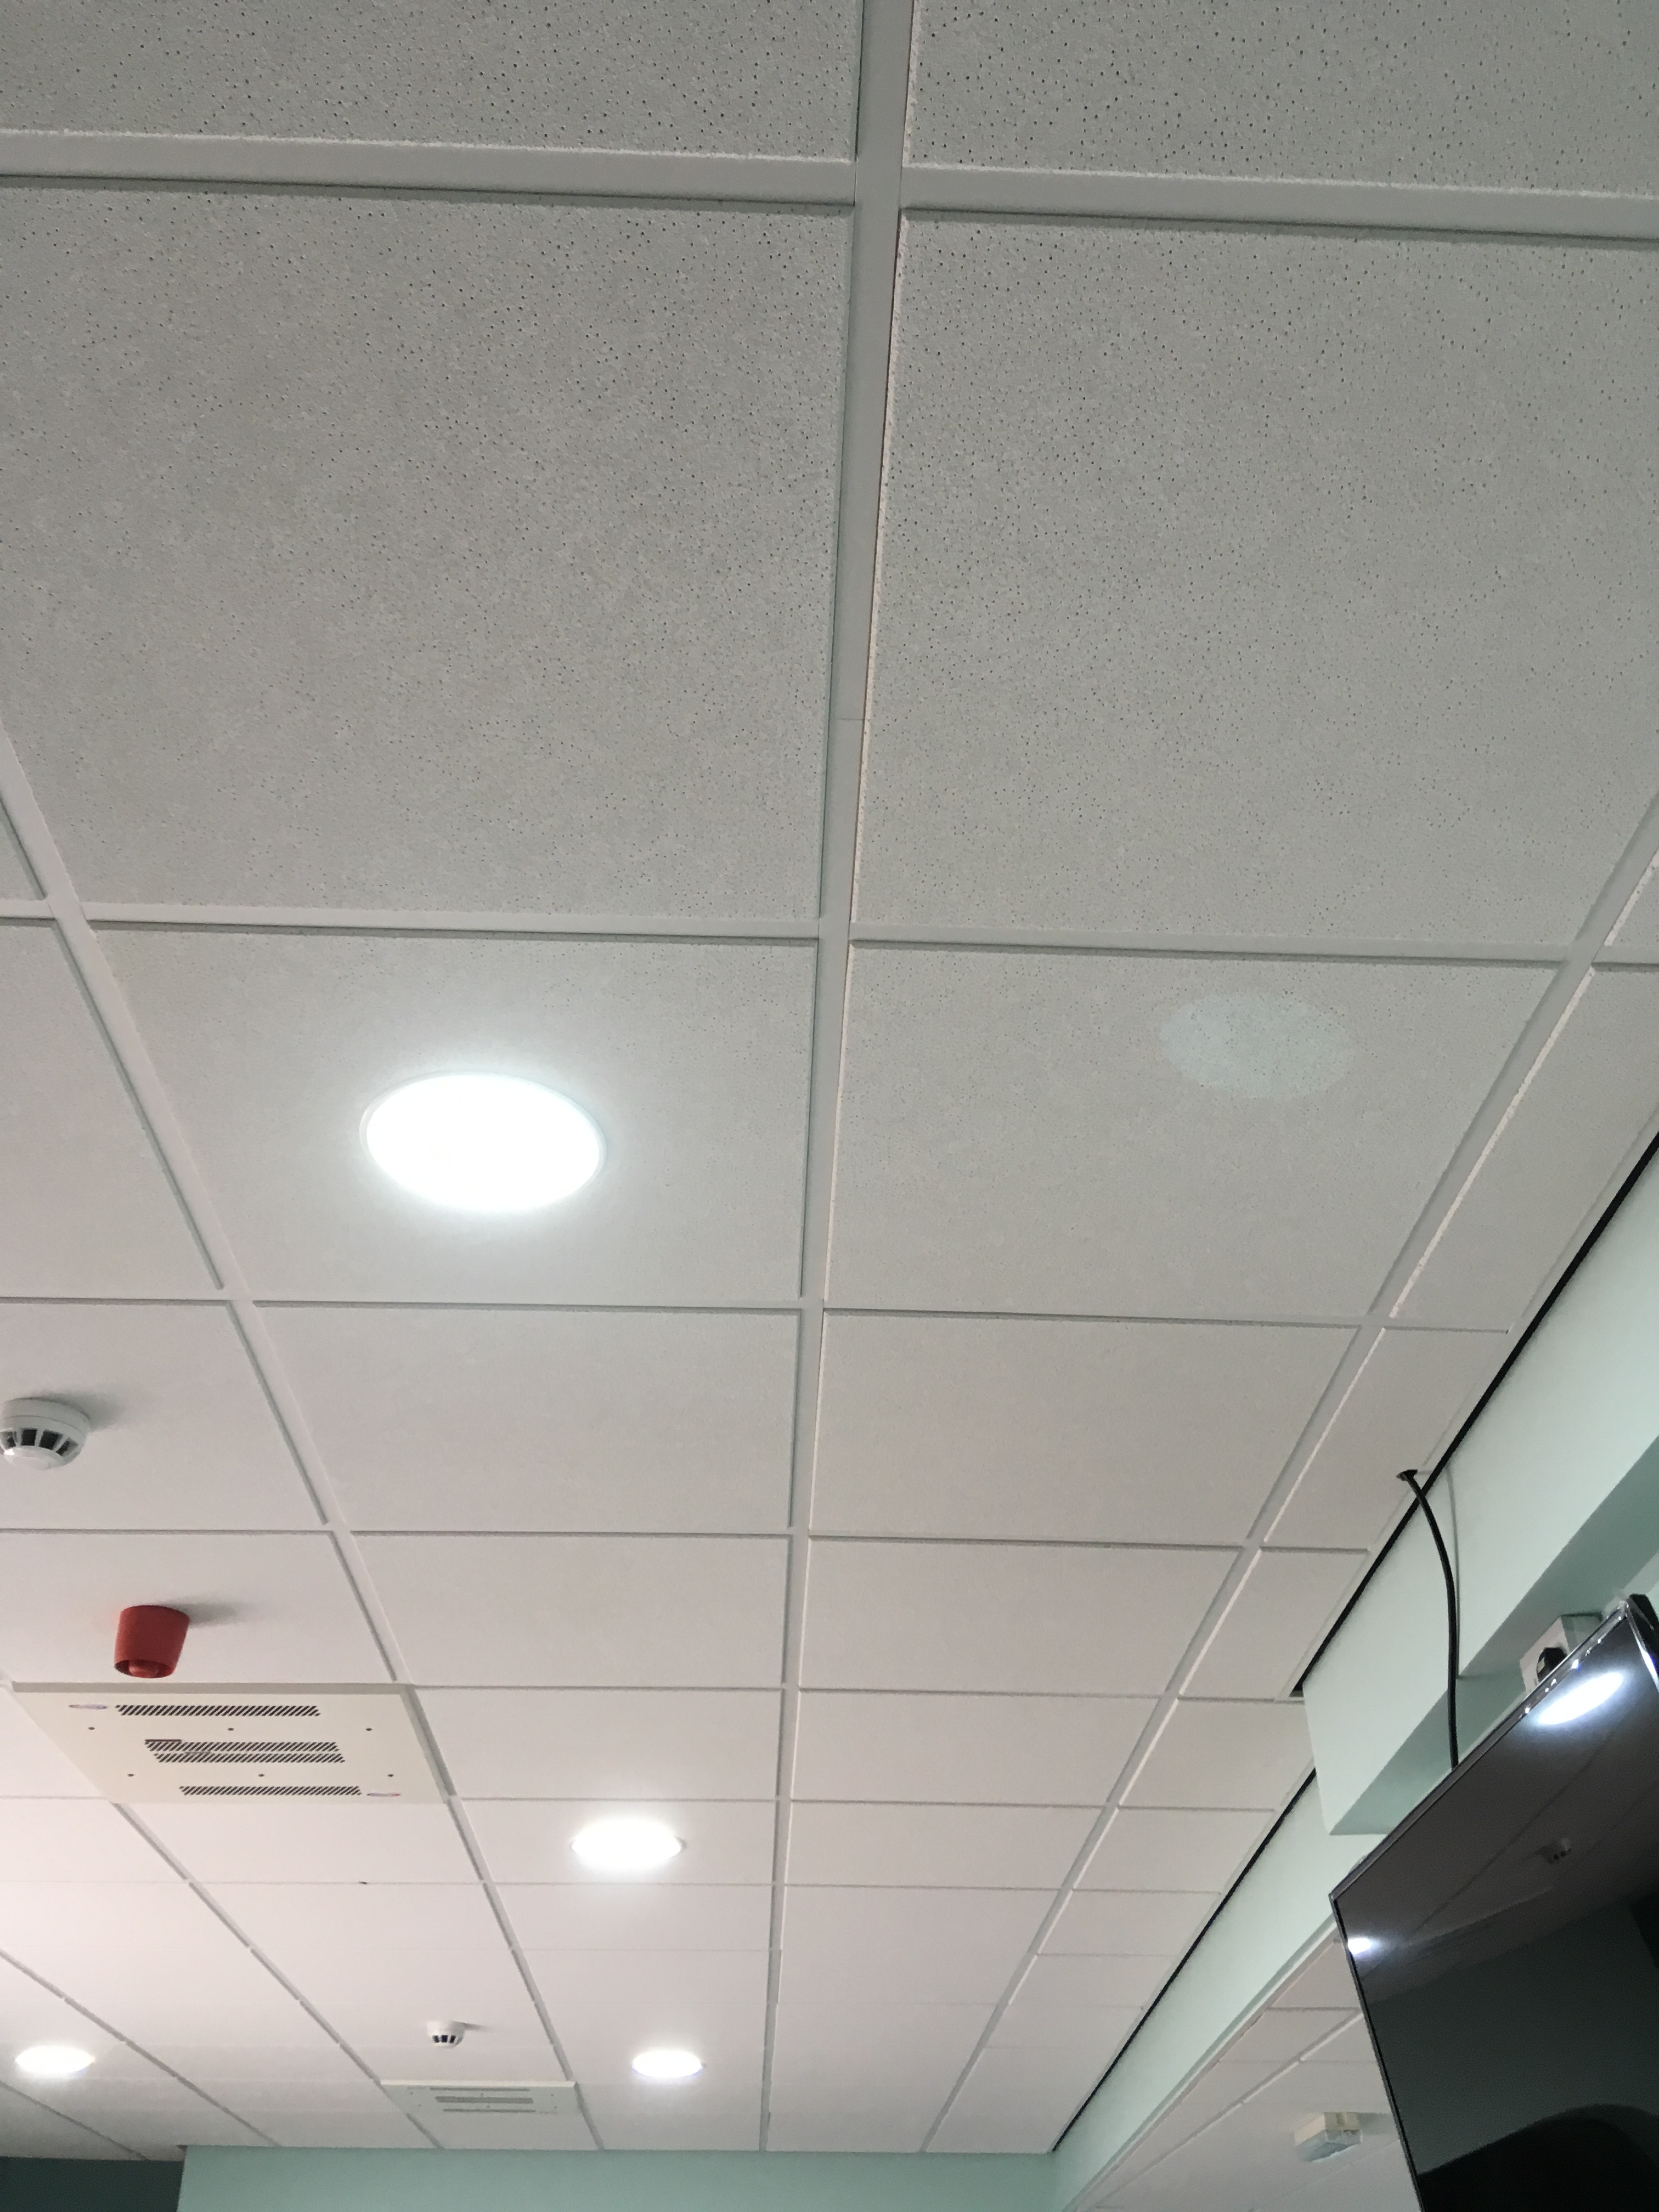 c rs down ceiling a applications en wid hei spectrum linlt tiles commercial exterior parking solutions mwts ceilings irvine panels photos spect garage us armstrong drop